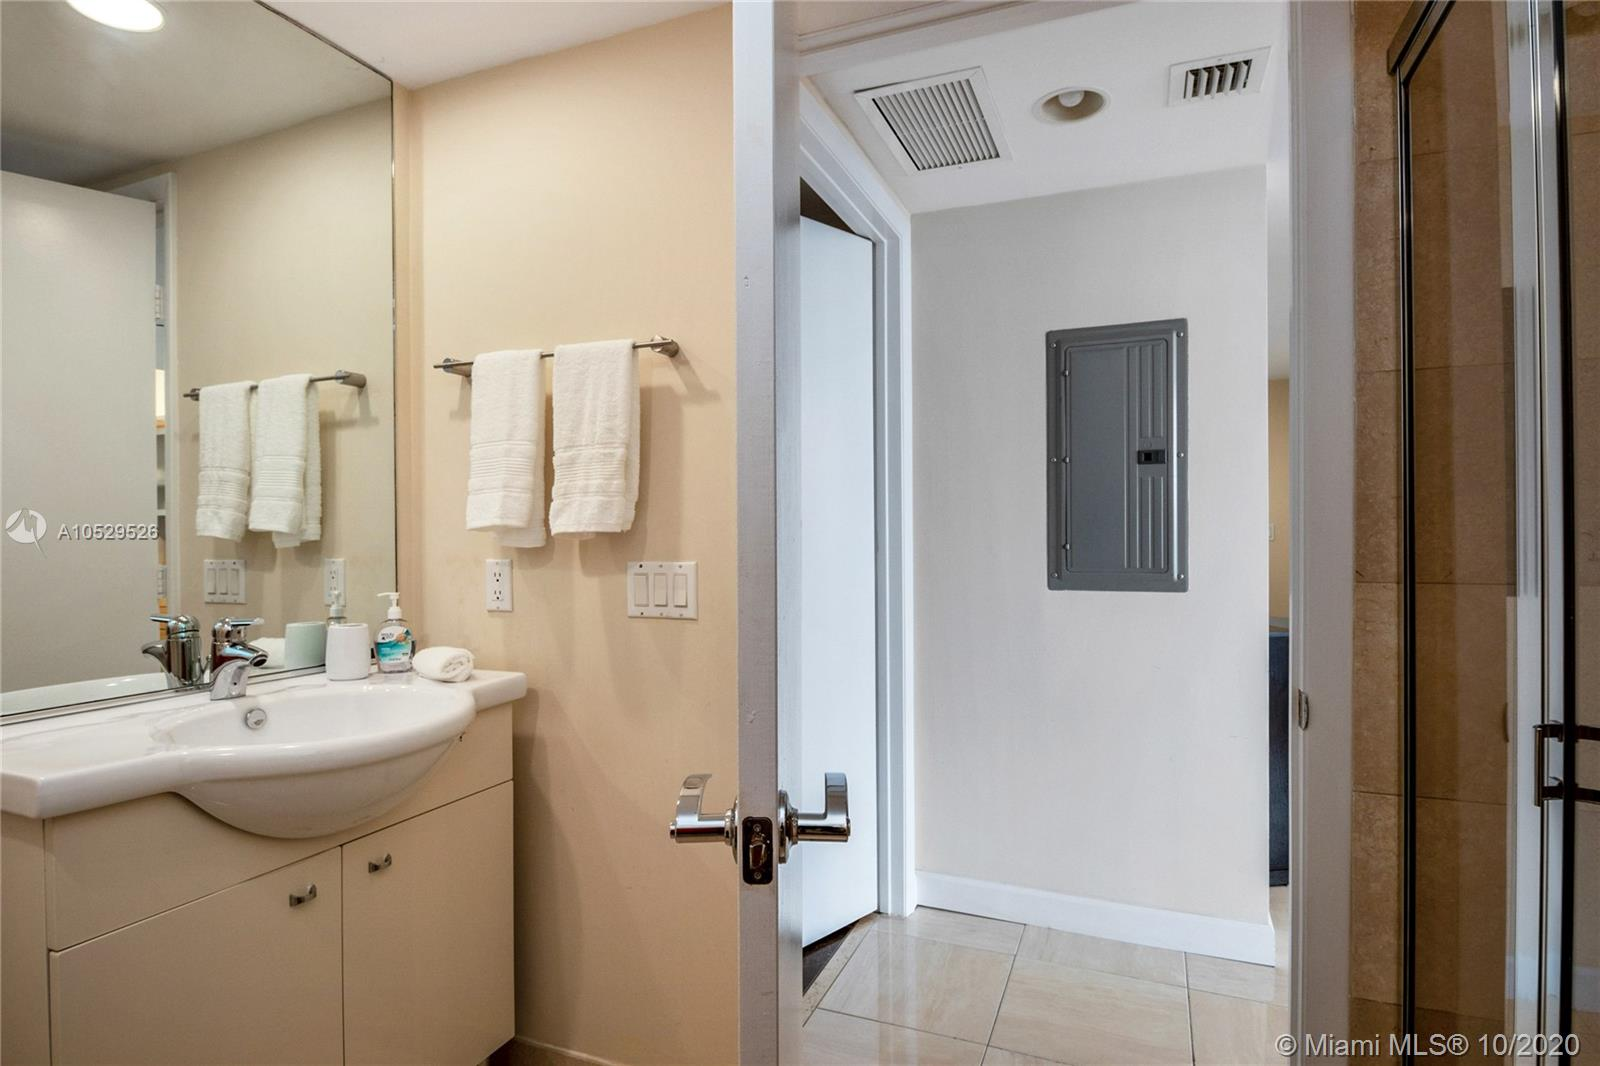 3508 2 / 2 1458 sq. ft. $ 2020-09-25 0 Photo